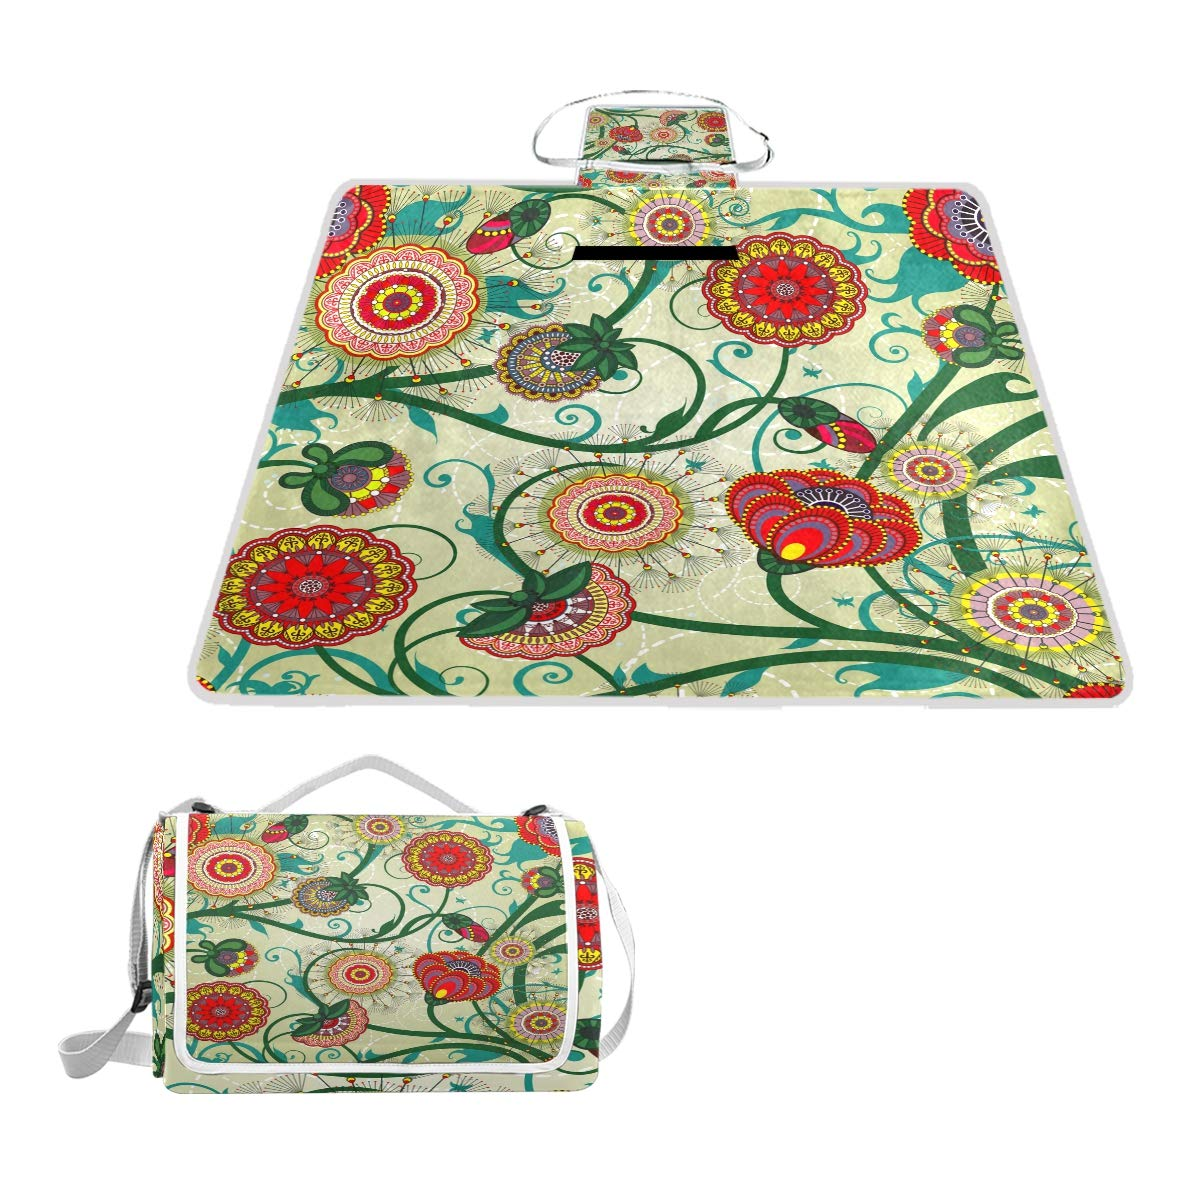 MAPOLO Floral Vintage Picnic Blanket Waterproof Outdoor Blanket Foldable Picnic Handy Mat Tote for Beach Camping Hiking by MAPOLO